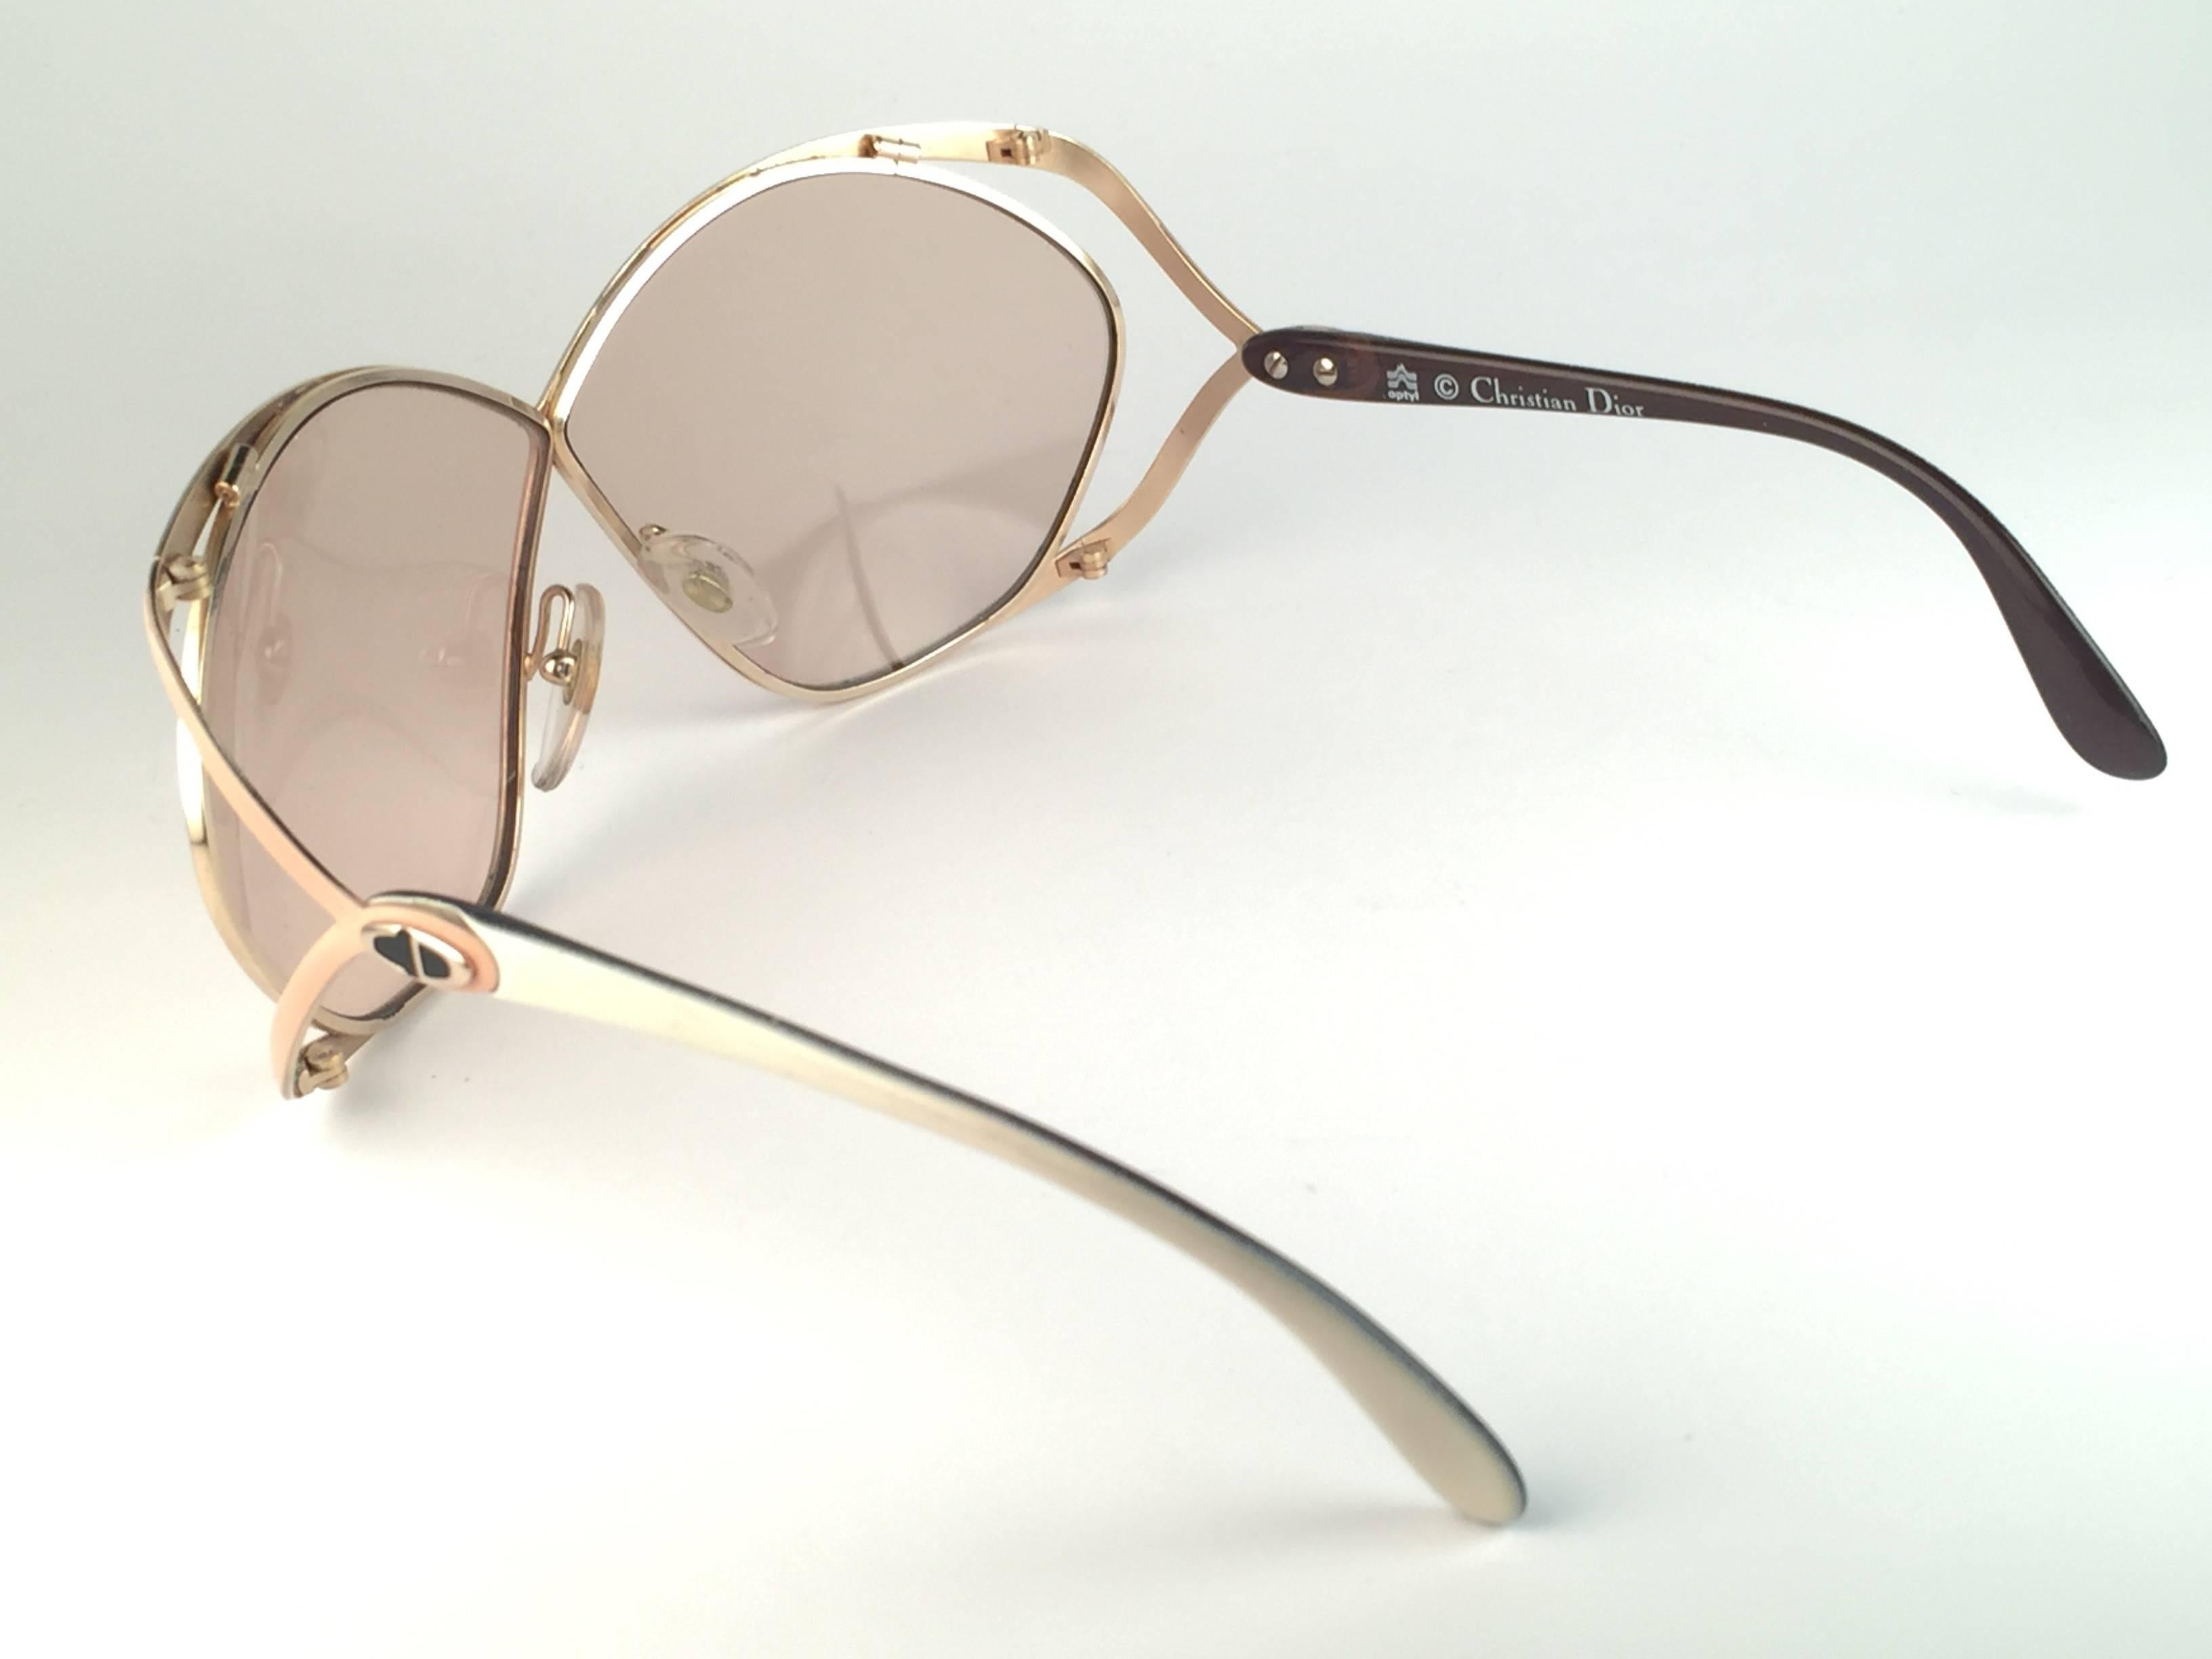 8740827e3f2 New Vintage Christian Dior 2056 70 Butterfly Gold White and Beige  Sunglasses For Sale at 1stdibs